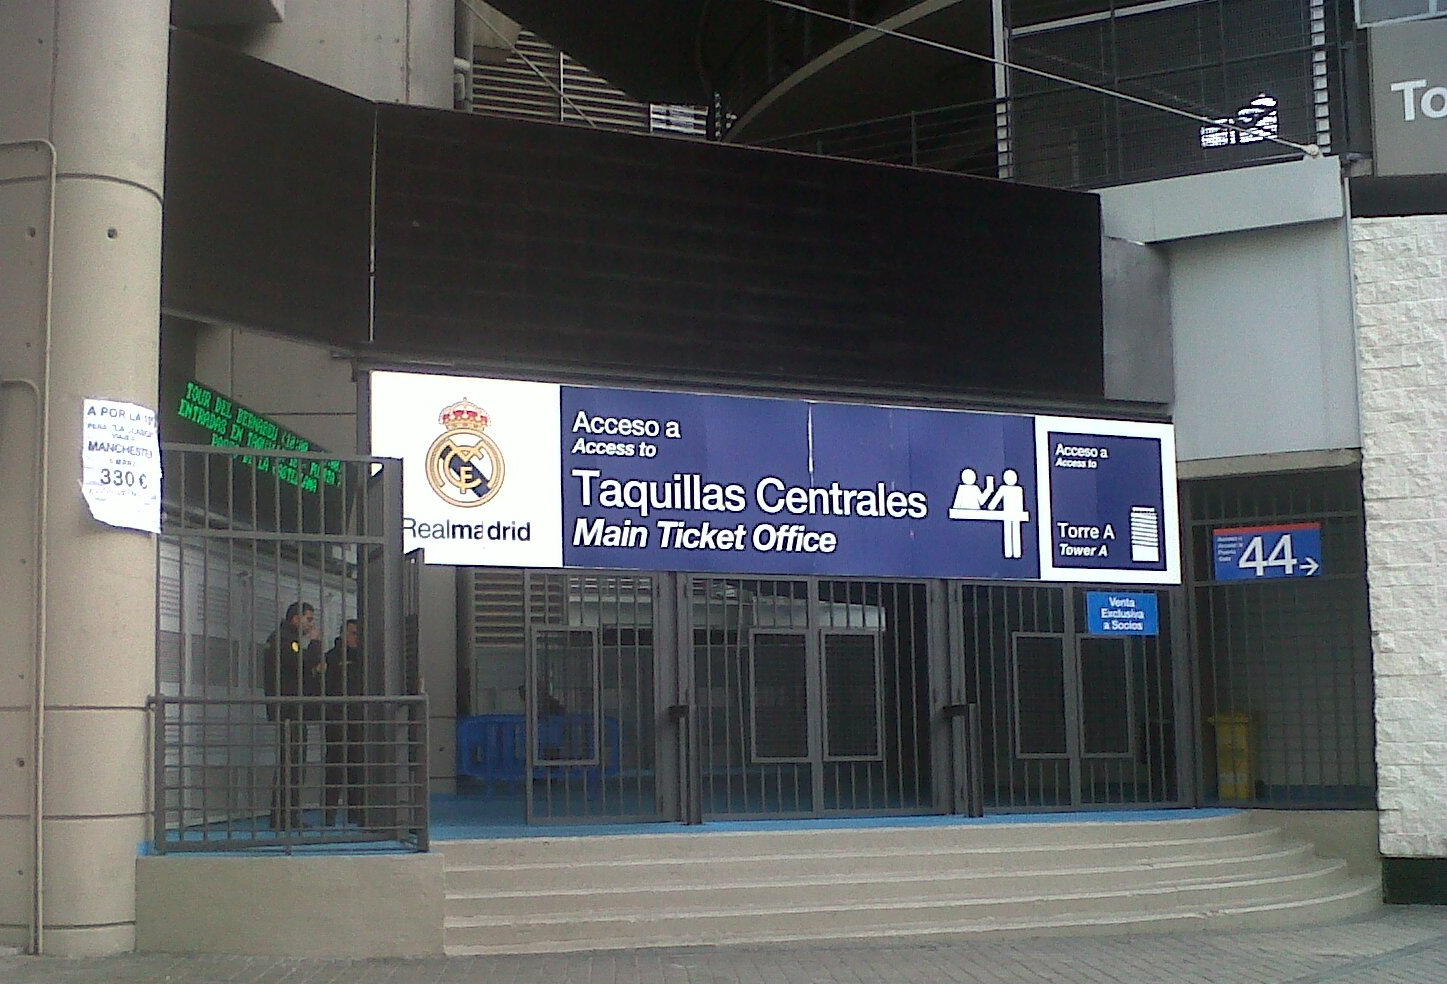 a80b1d94048d0 if you want to discuss in Spanish the latest trends in Spanish football and  especially the Real Madrid join me in this forum Foro Real Madrid at  webpage  ...